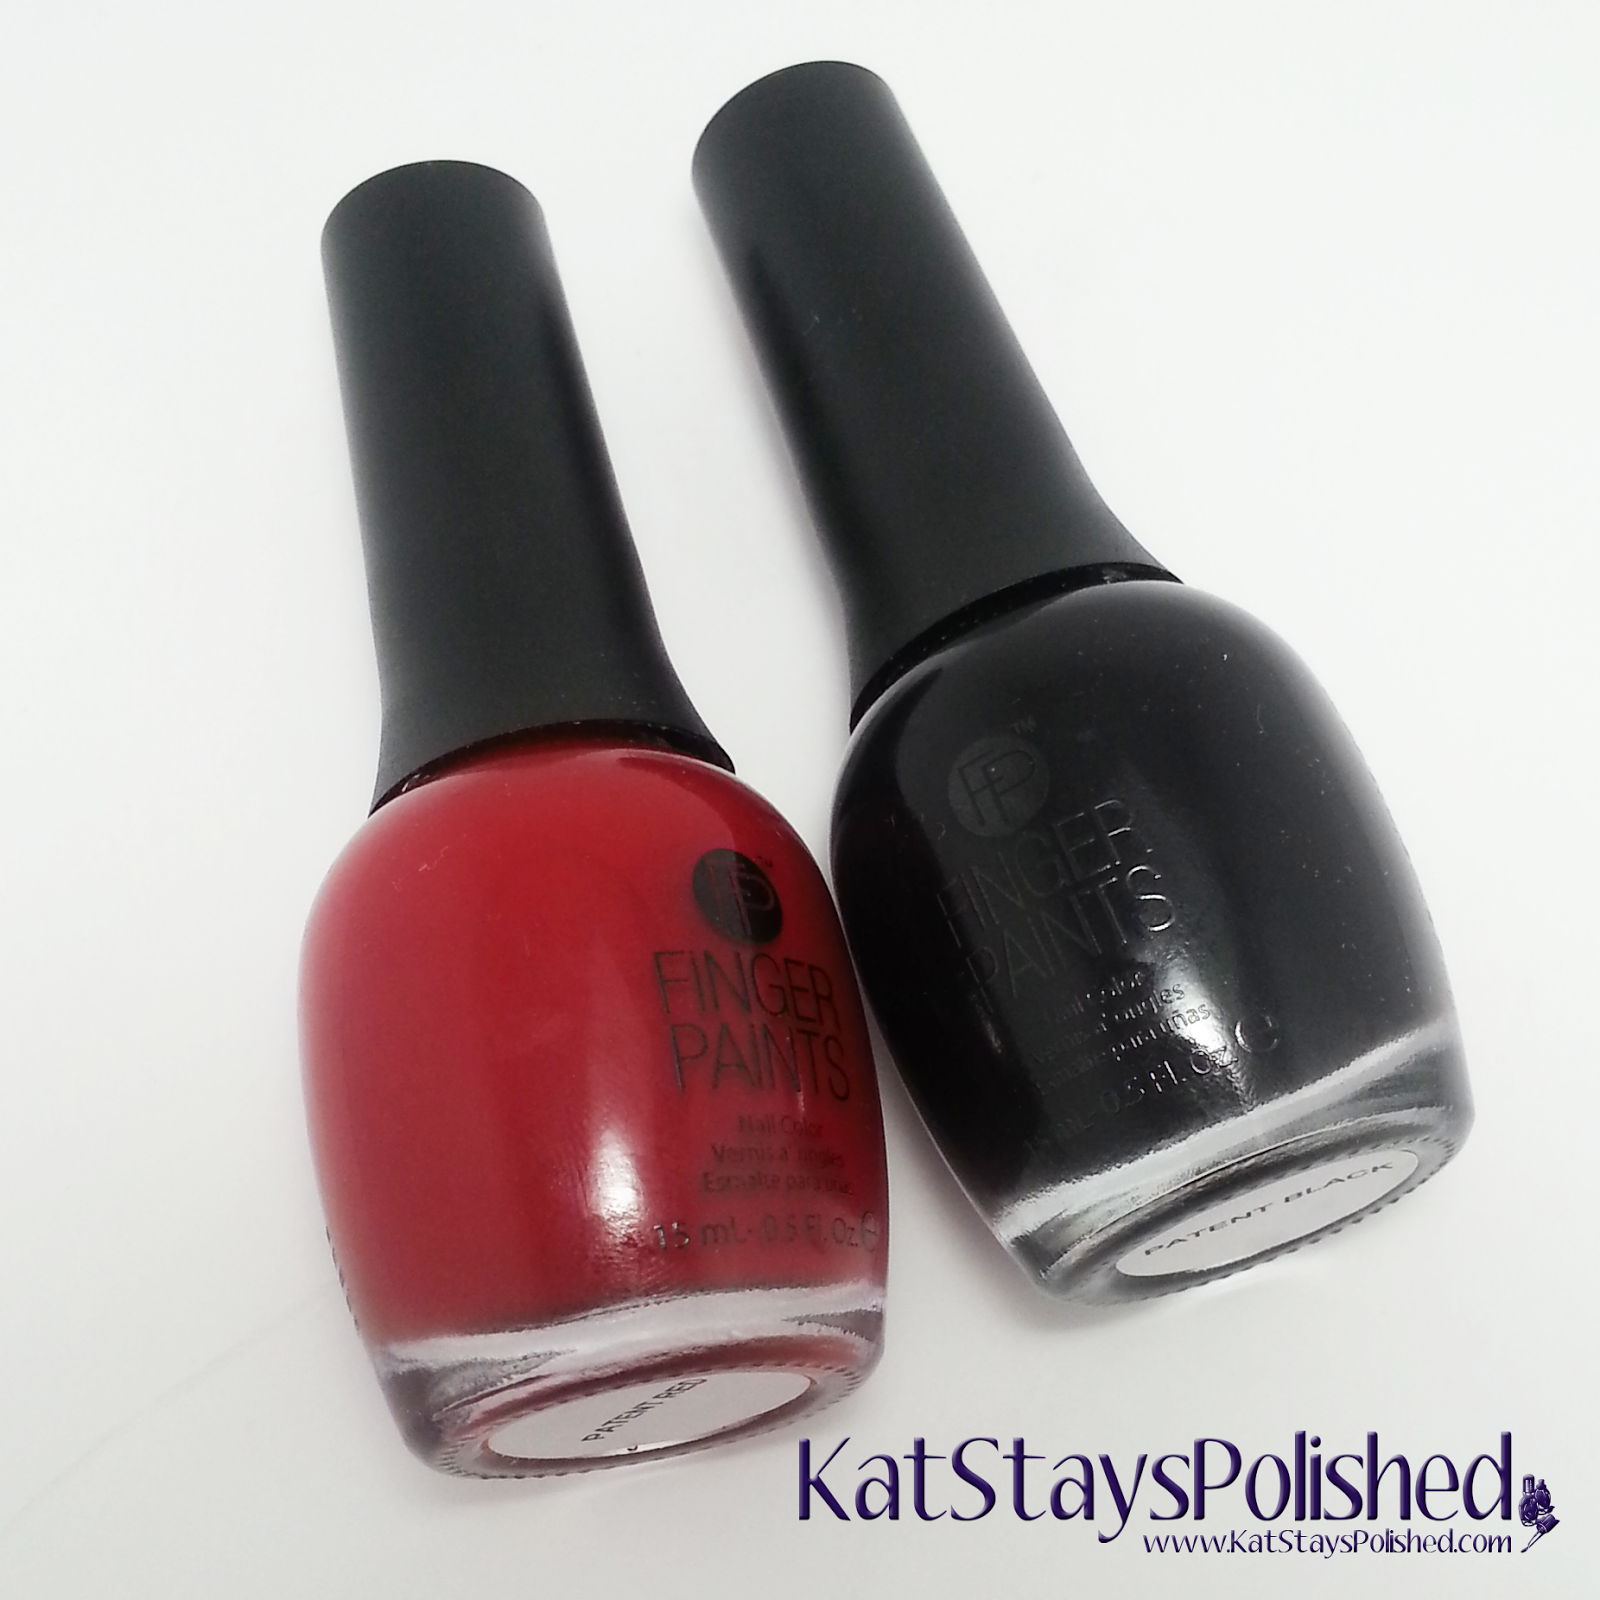 FingerPaints Patent Leather Duo | Kat Stays Polished